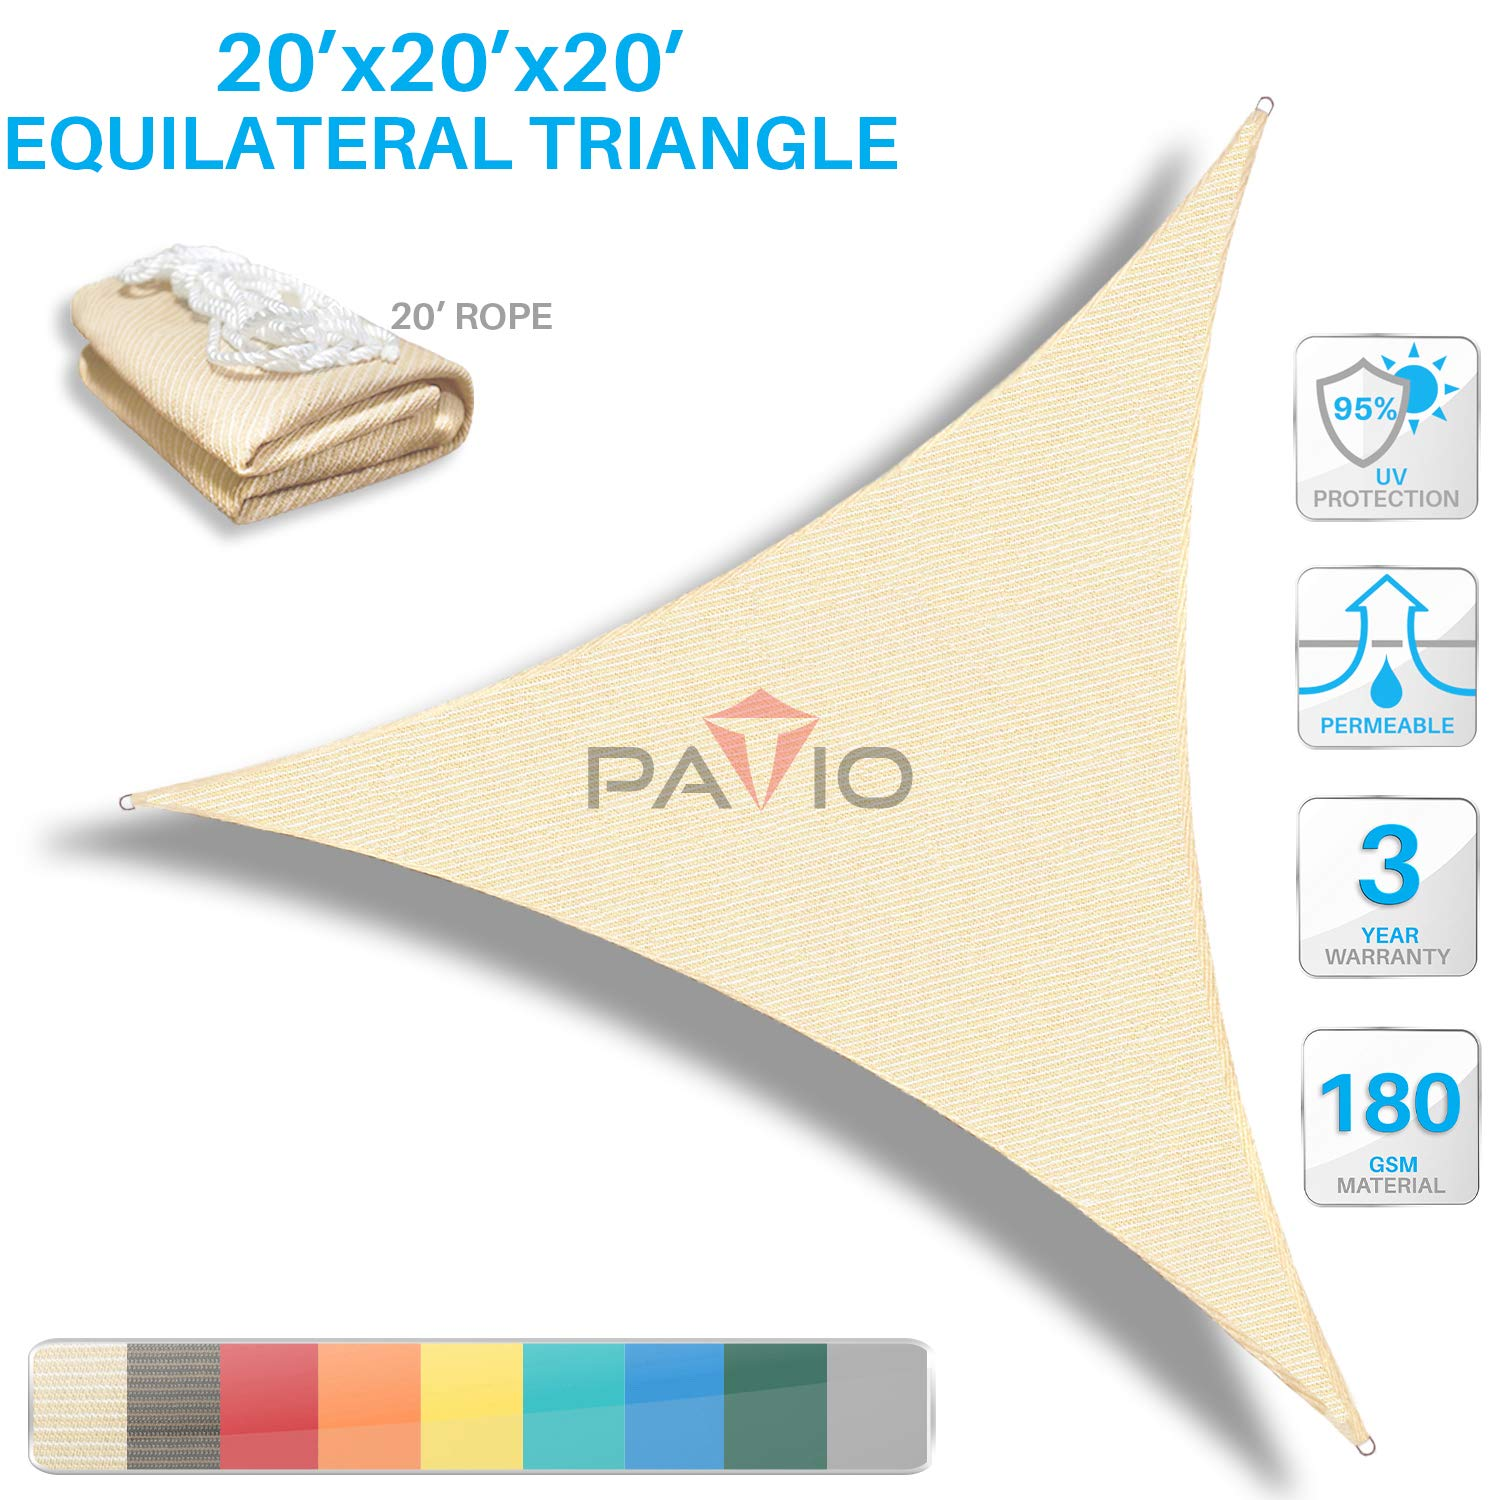 Patio Paradise 20' x20'x 20' Beige Sun Shade Sail Triangle Canopy - Permeable UV Block Fabric Durable Outdoor  - Customized Available by Patio